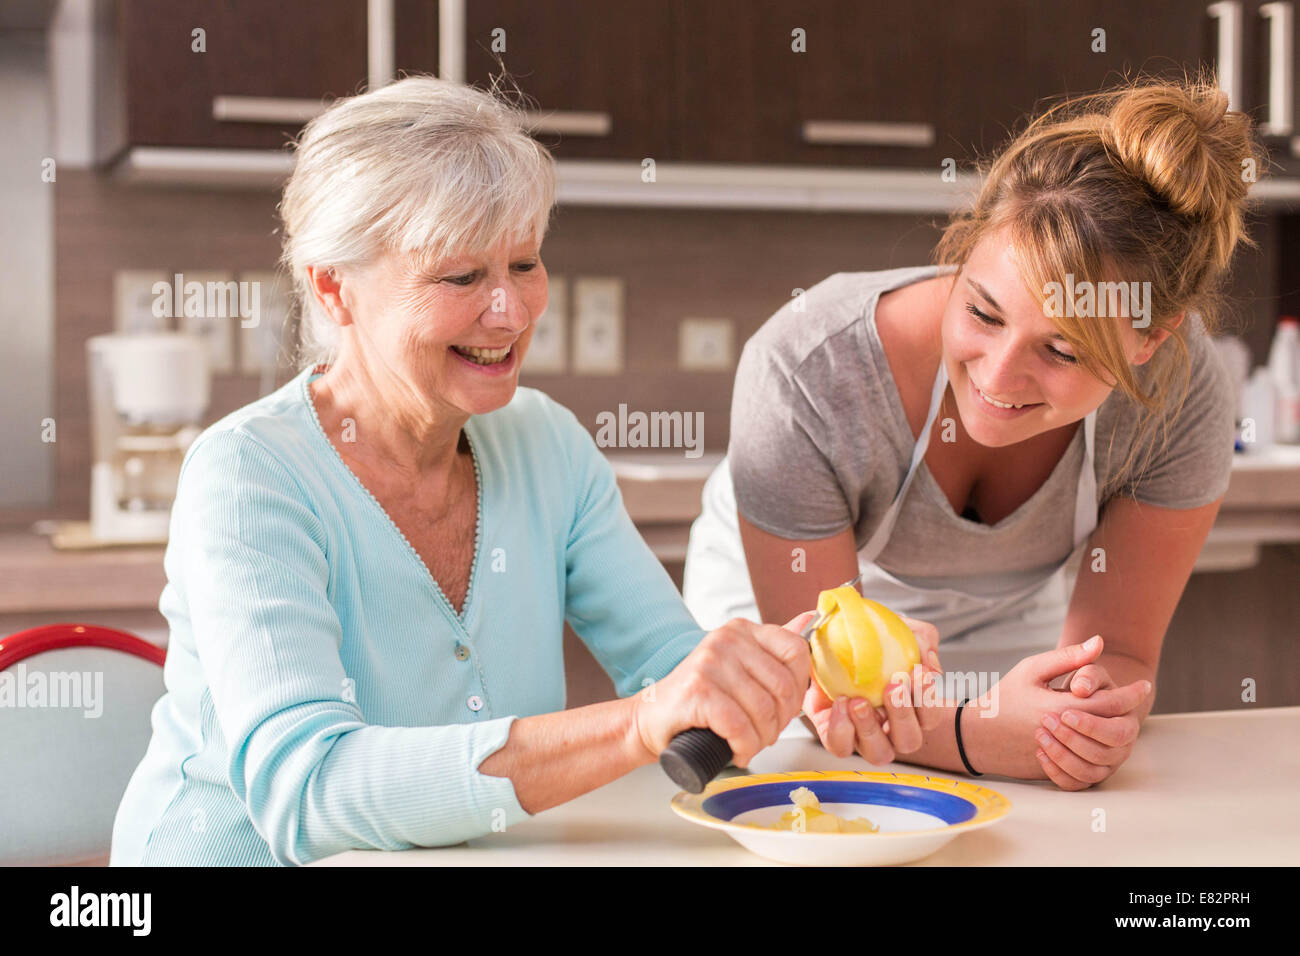 Woman using an ergonomic knife. - Stock Image